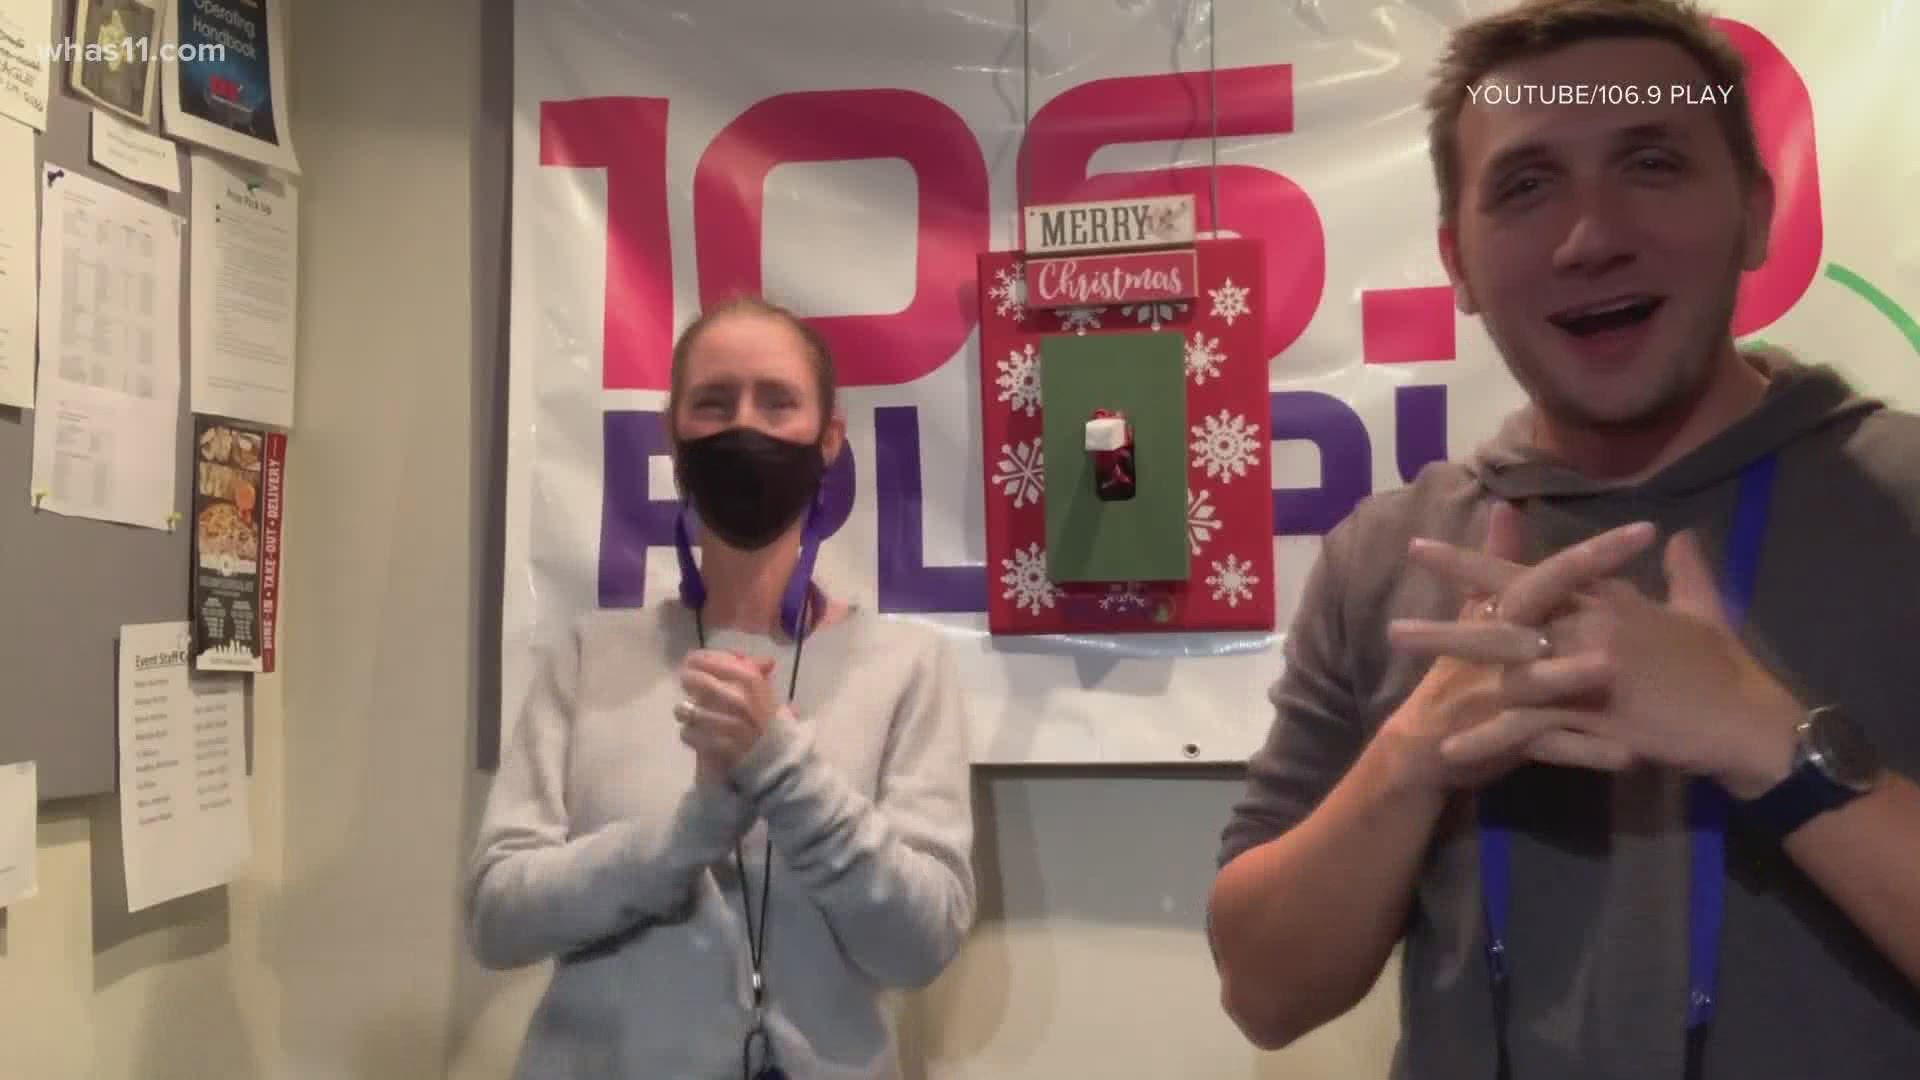 106.9 launches all day Christmas music | whas11.com